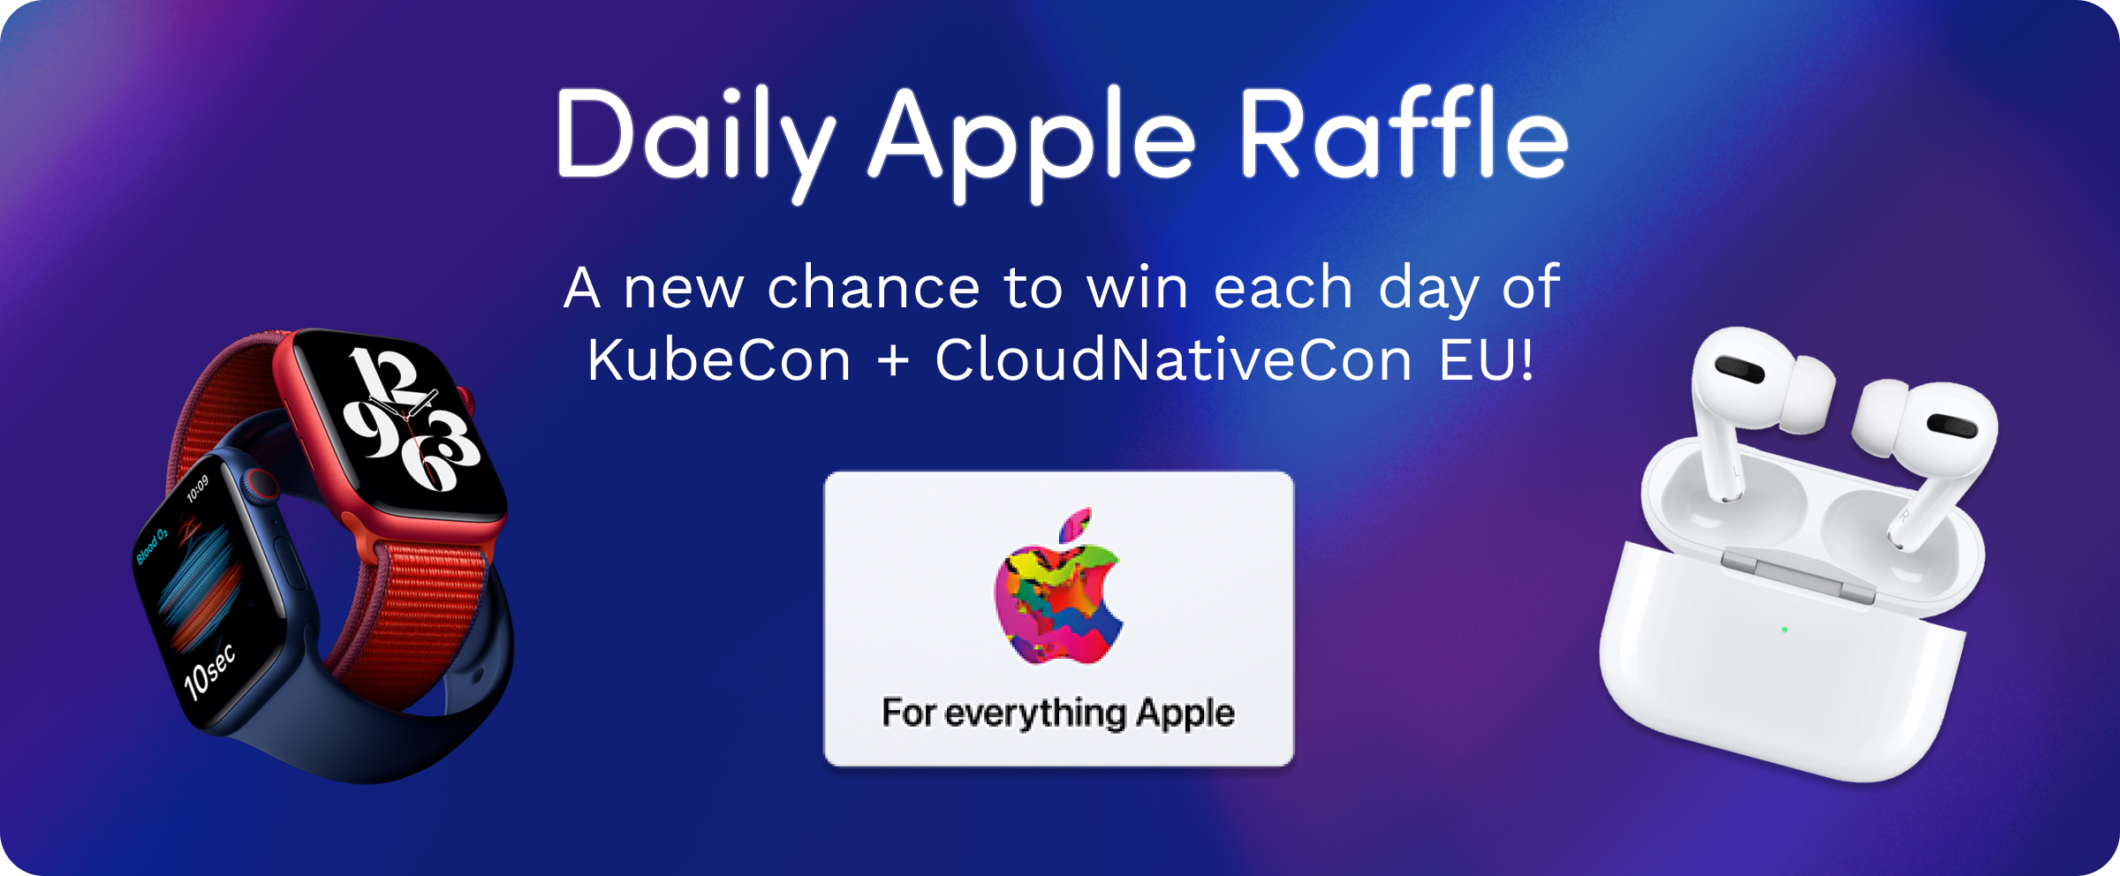 Daily Apple Raffle by Bridgecrew at KubeCon CloudNativeCon EU 2021